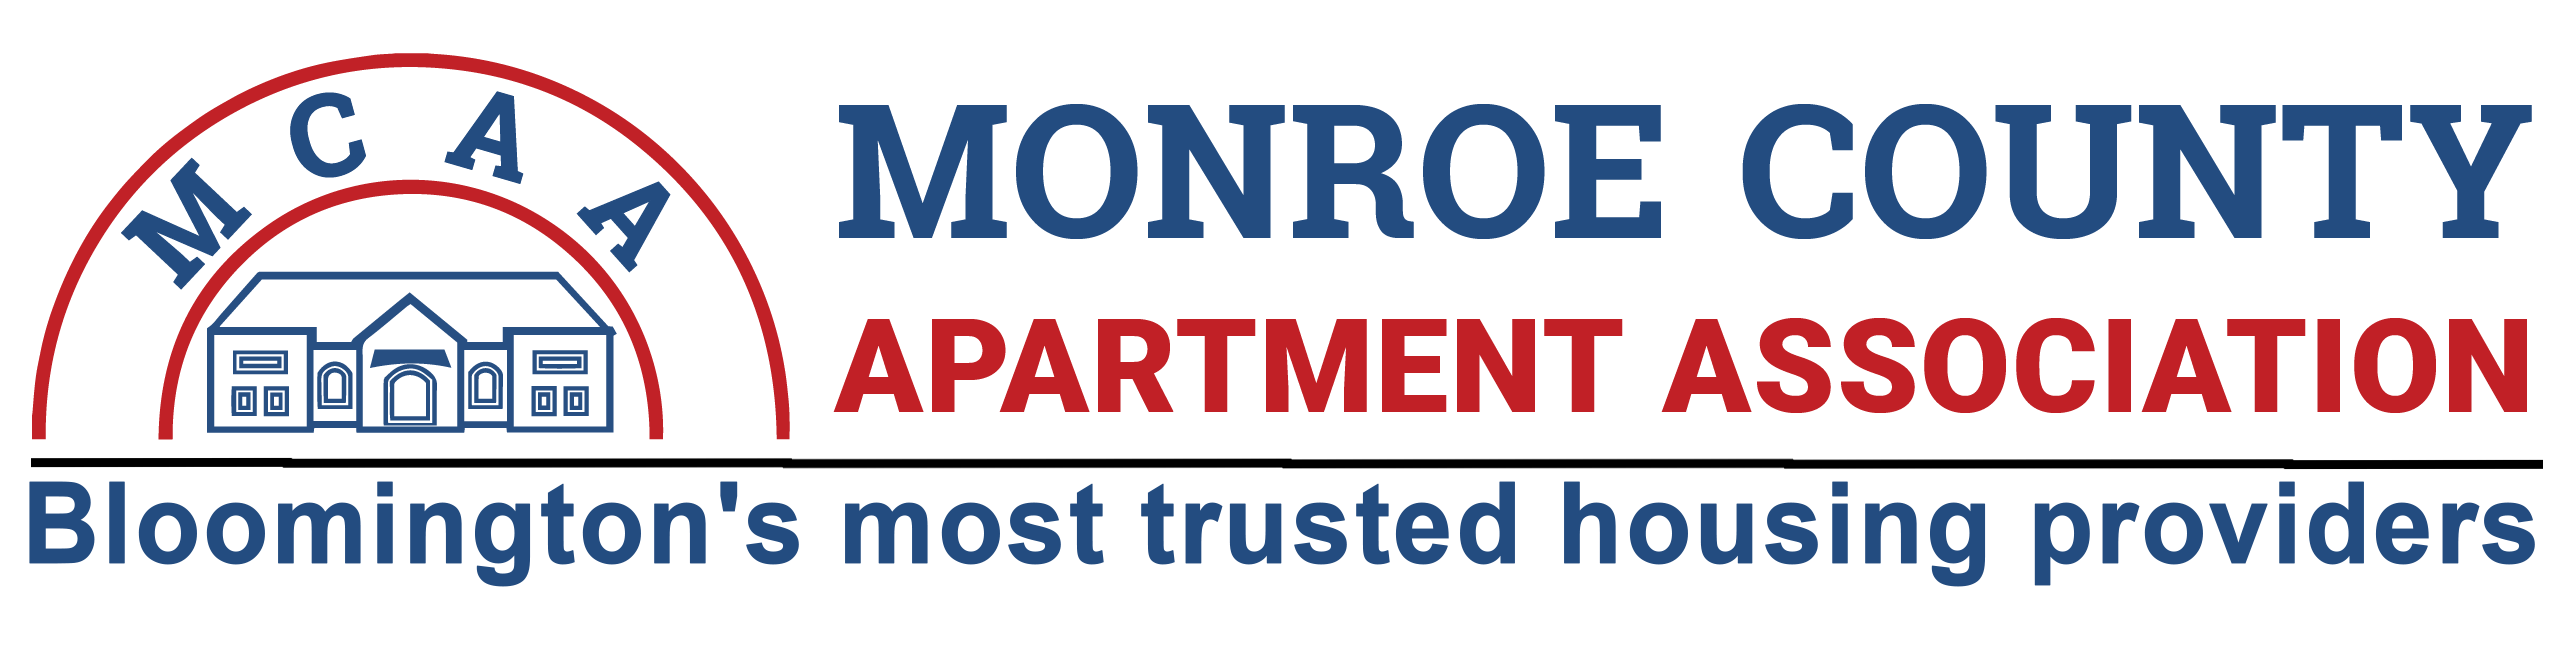 Monroe County Apartment Association